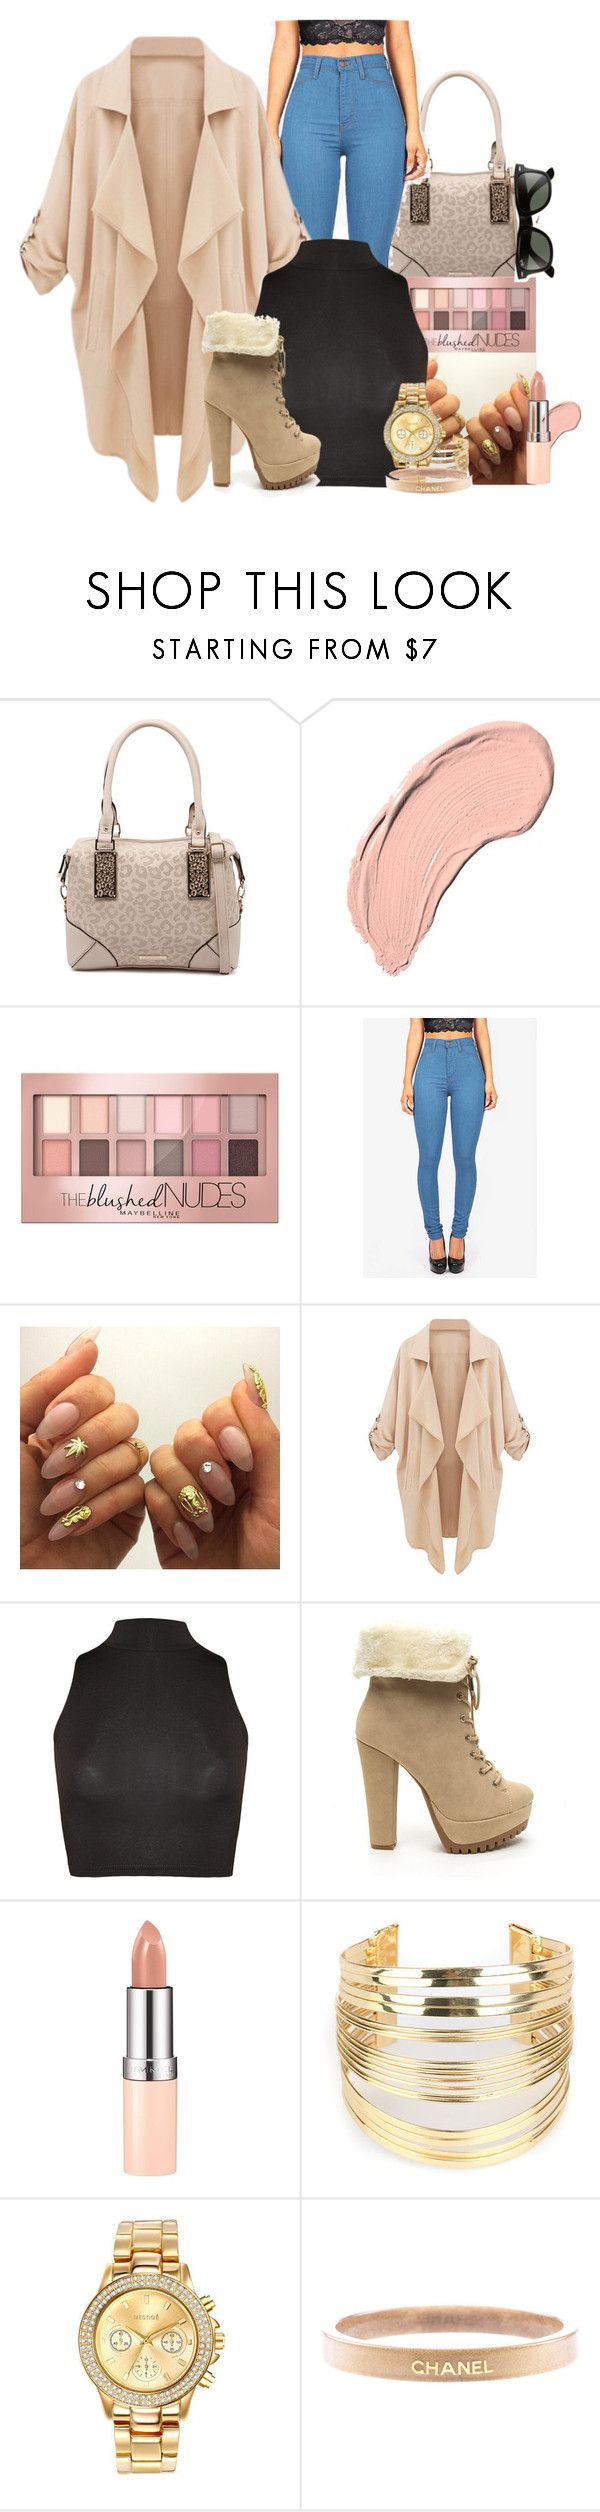 """trend setter"" by bitchgotswagg ❤ liked on Polyvore featuring Kardashian Kollection, NYX, Maybelline, WearAll, Rimmel, WithChic, Mestige, Chanel and Ray-Ban"